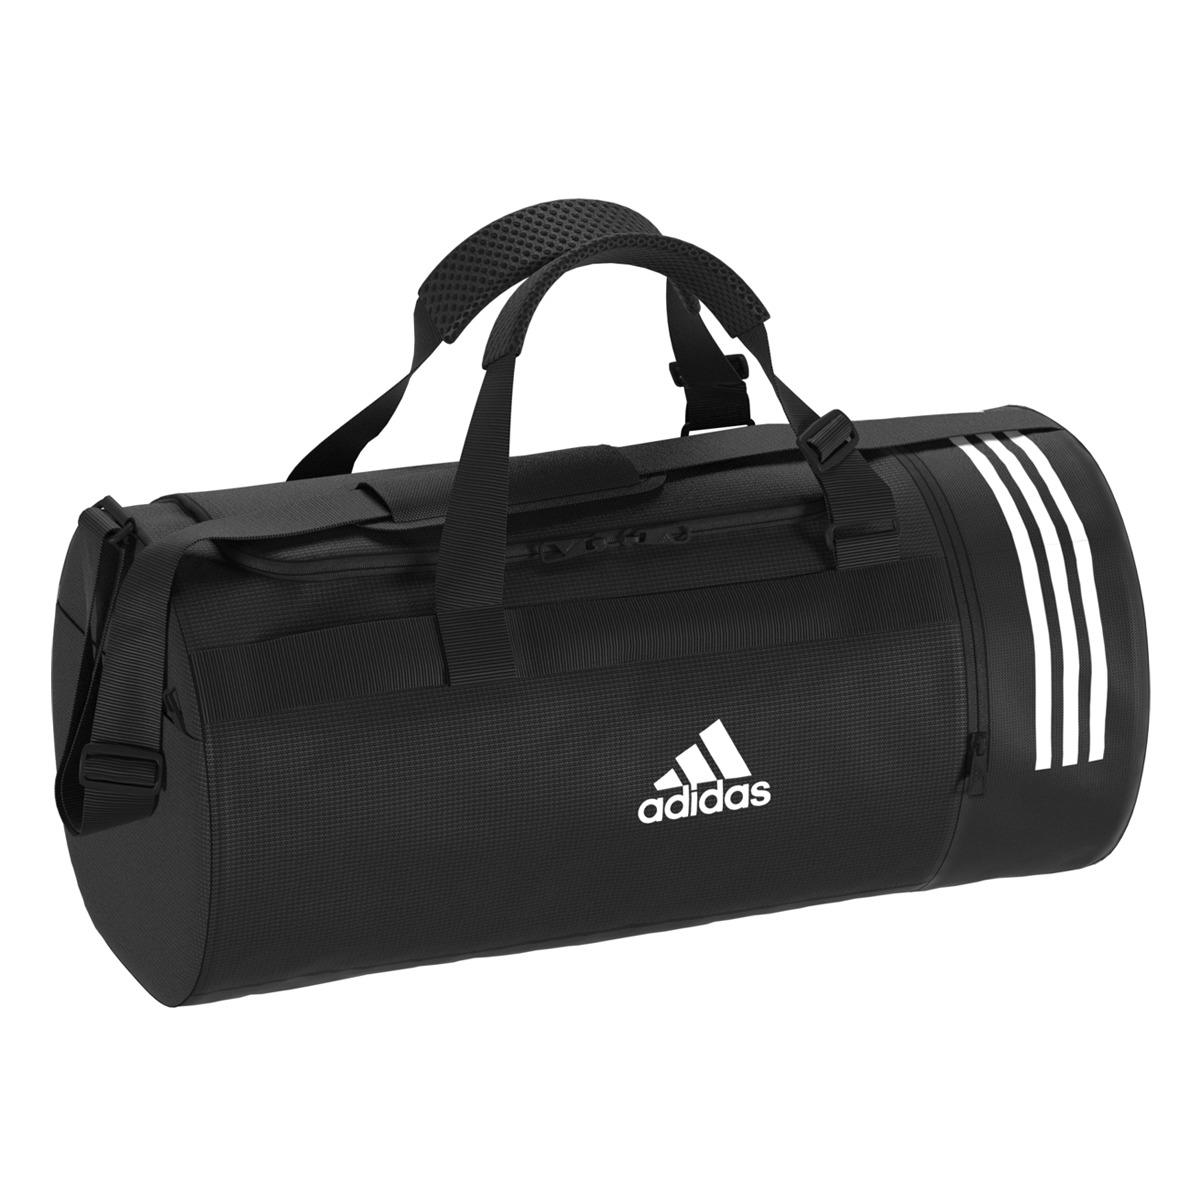 02fab20153 Lyst - adidas Convertible 3 Stripes Duffel M Sports Bag in Black for Men